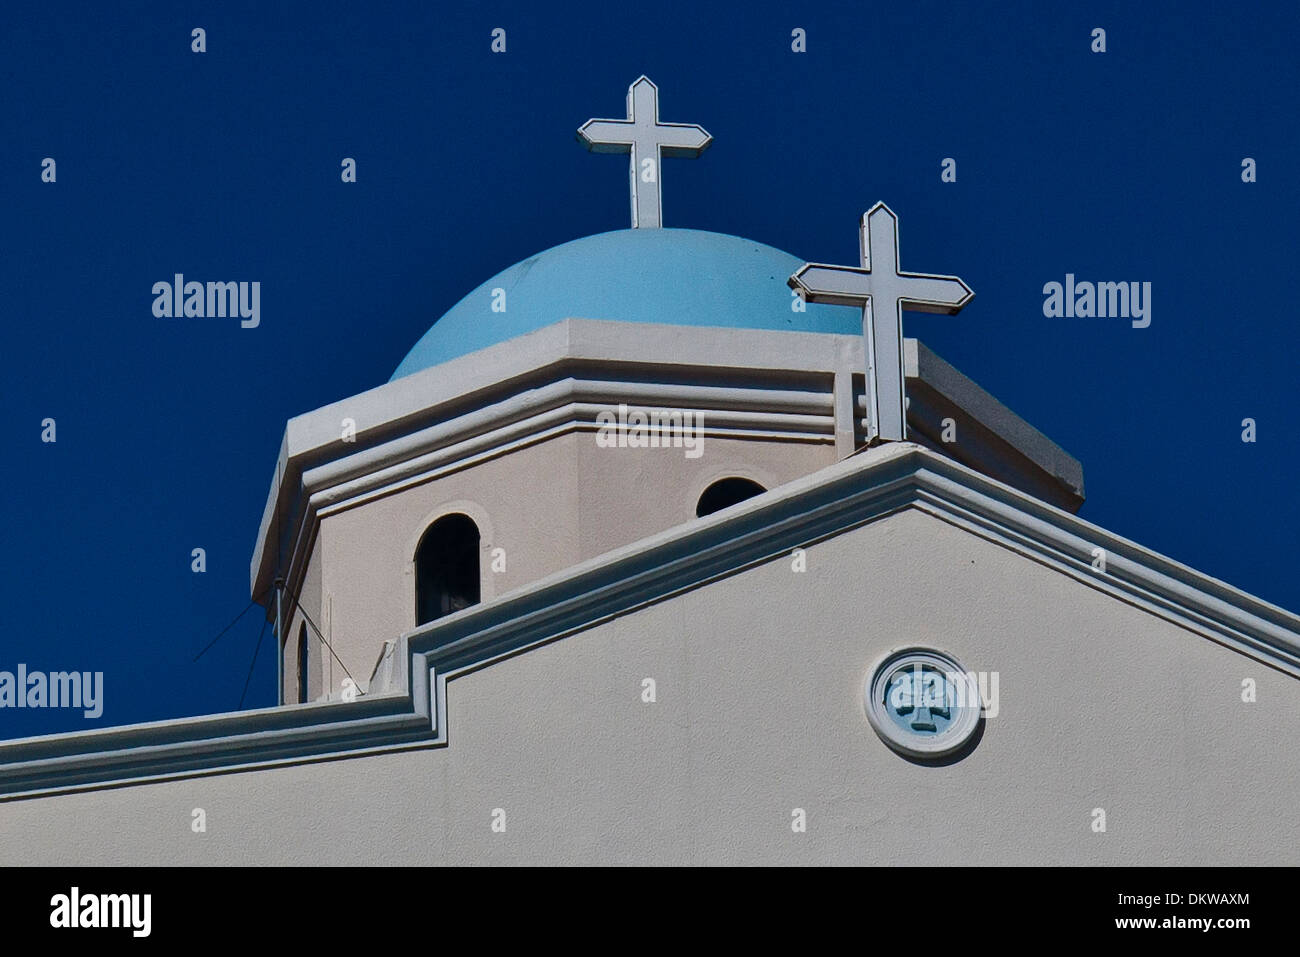 Kos Agia Paraskevi bishop's church Dodekanese building construction faith bell tower belfry Greece Europe port island church - Stock Image